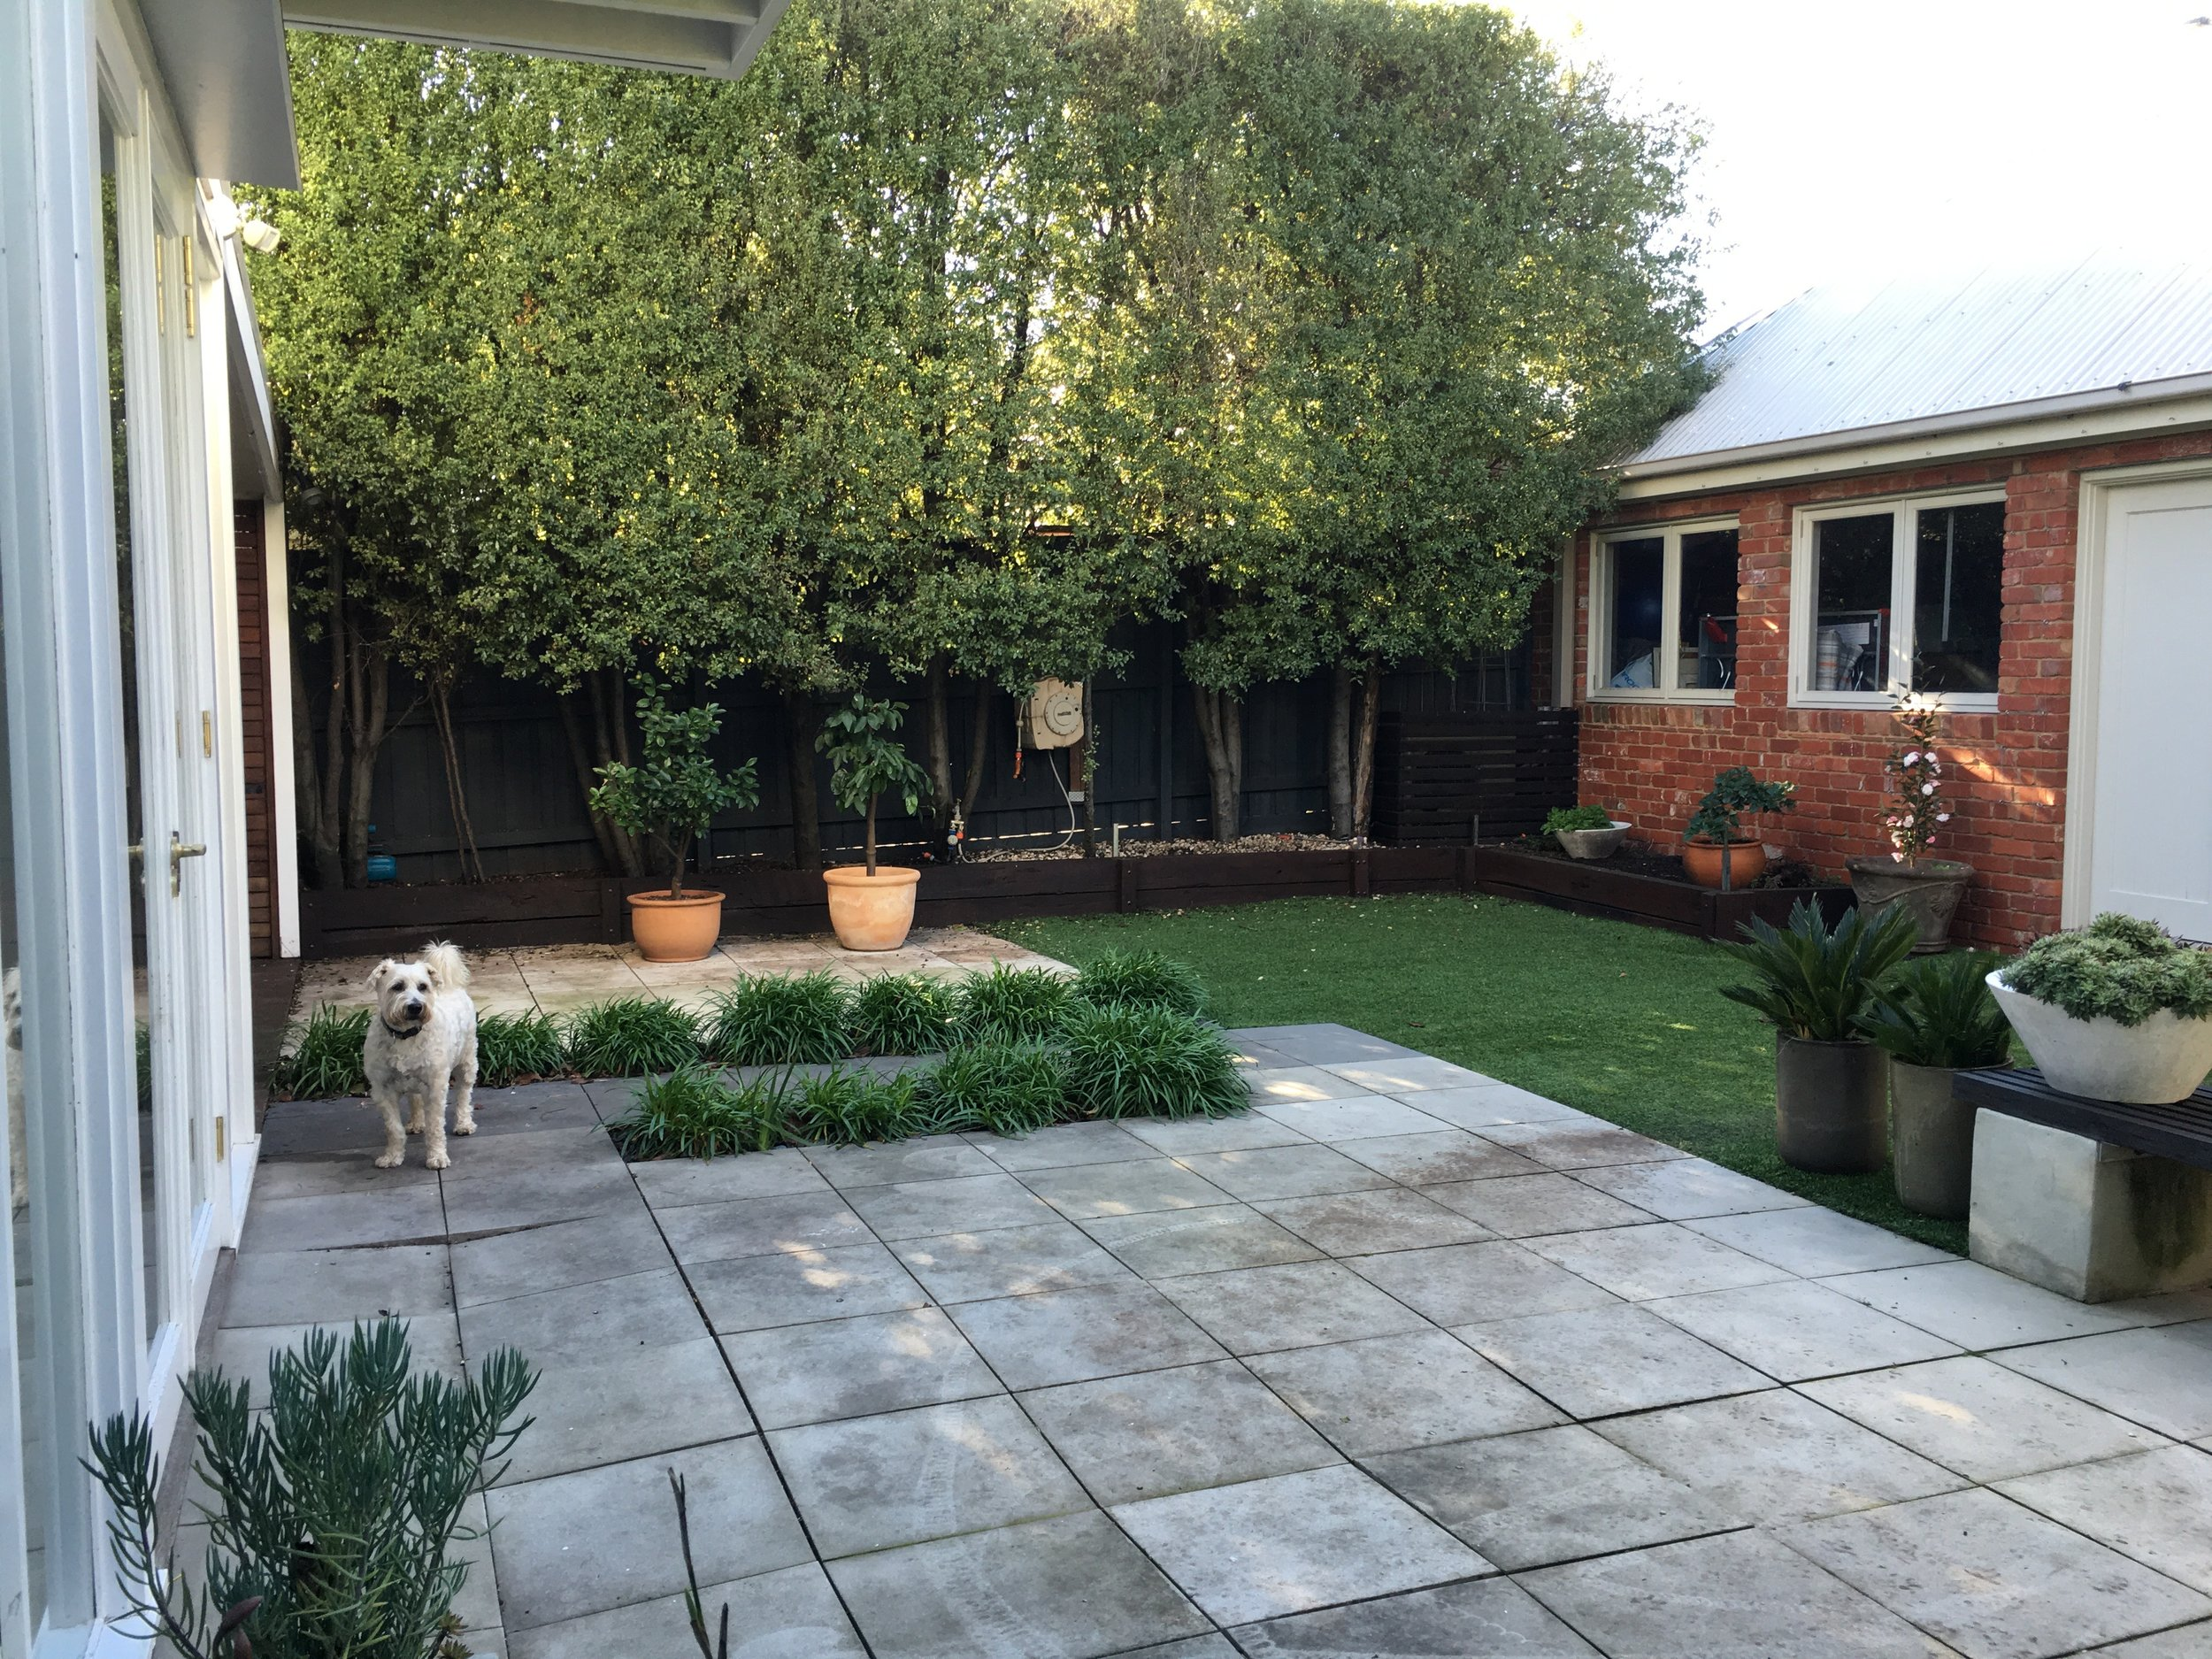 Before: A pretty tired space with shabby paving that had dropped over time - there was nowhere to relax and the space emend small and uninviting.